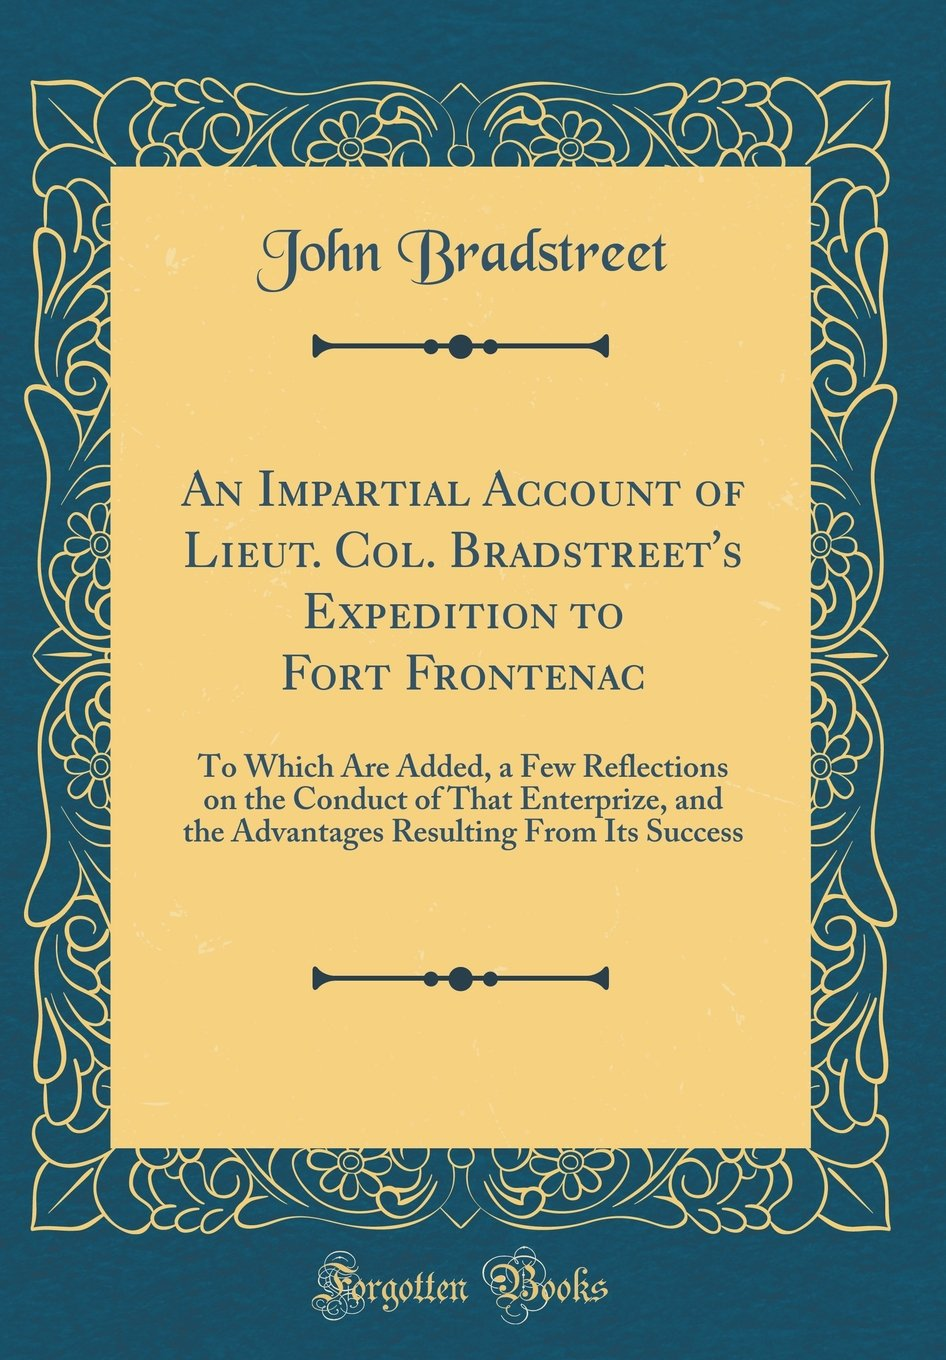 Download An Impartial Account of Lieut. Col. Bradstreet's Expedition to Fort Frontenac: To Which Are Added, a Few Reflections on the Conduct of That ... Resulting from Its Success (Classic Reprint) PDF